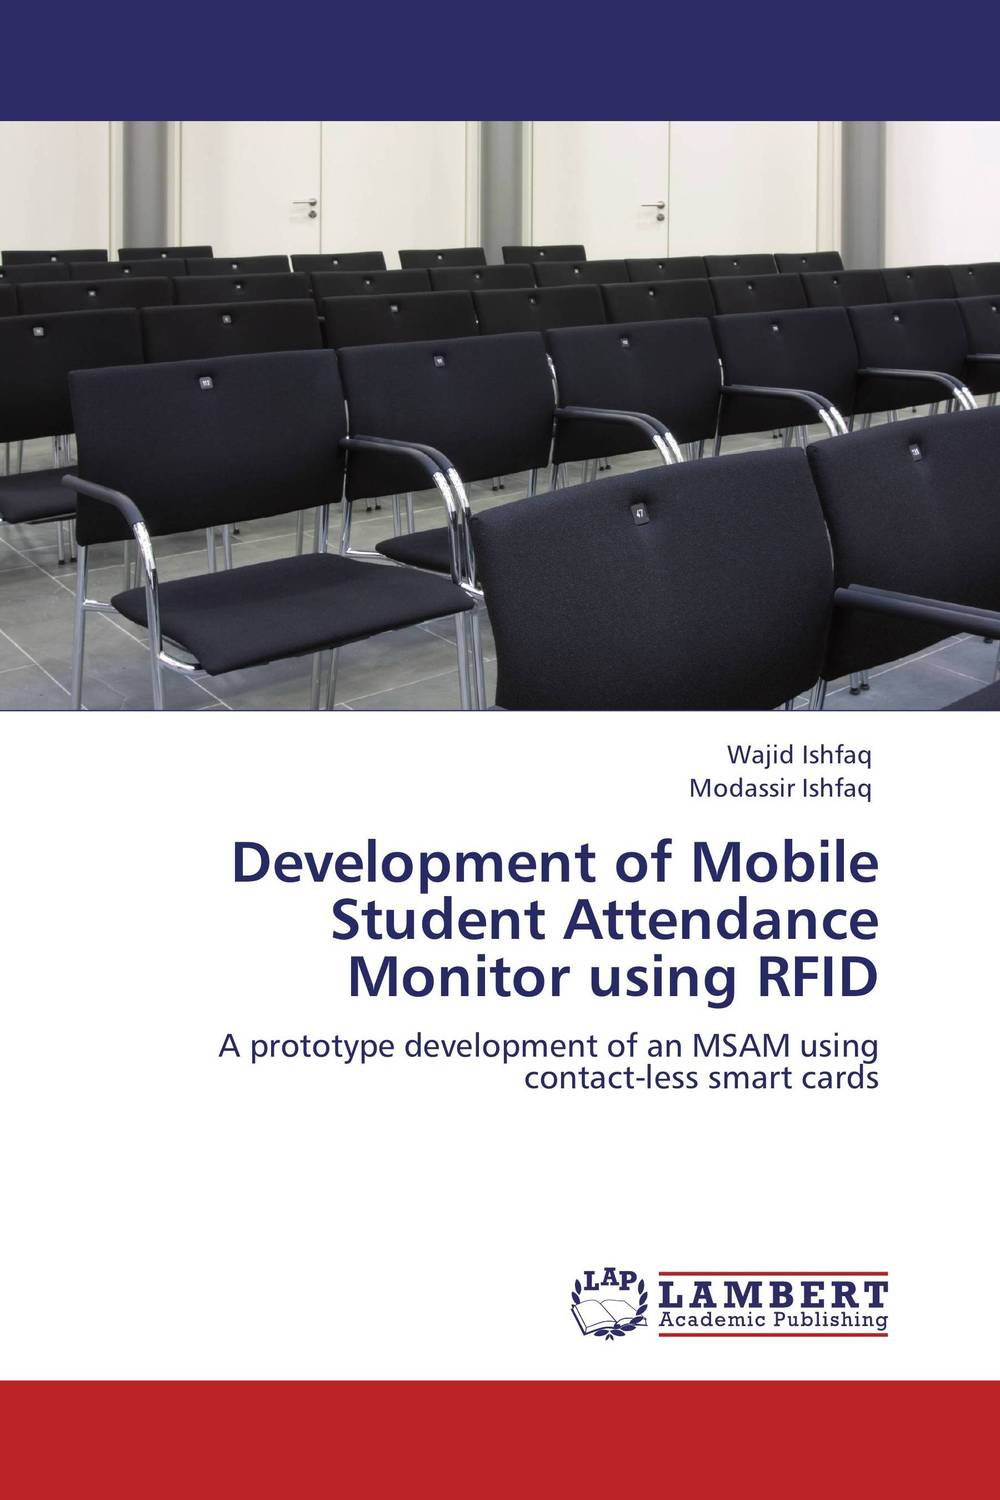 Development of Mobile Student Attendance Monitor using RFID class attendance system using fingerprint technique